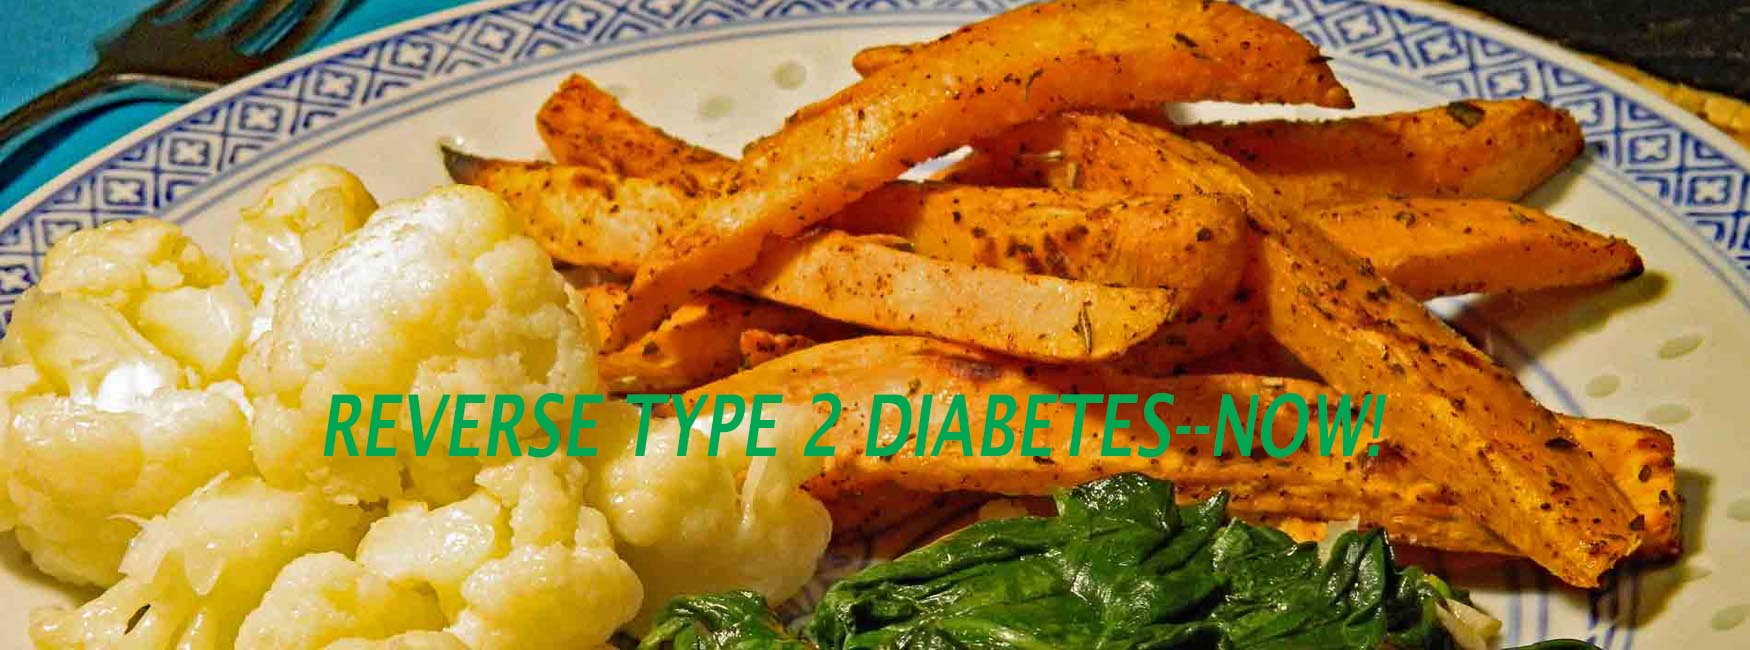 Attack diabetes with a plant based diet.